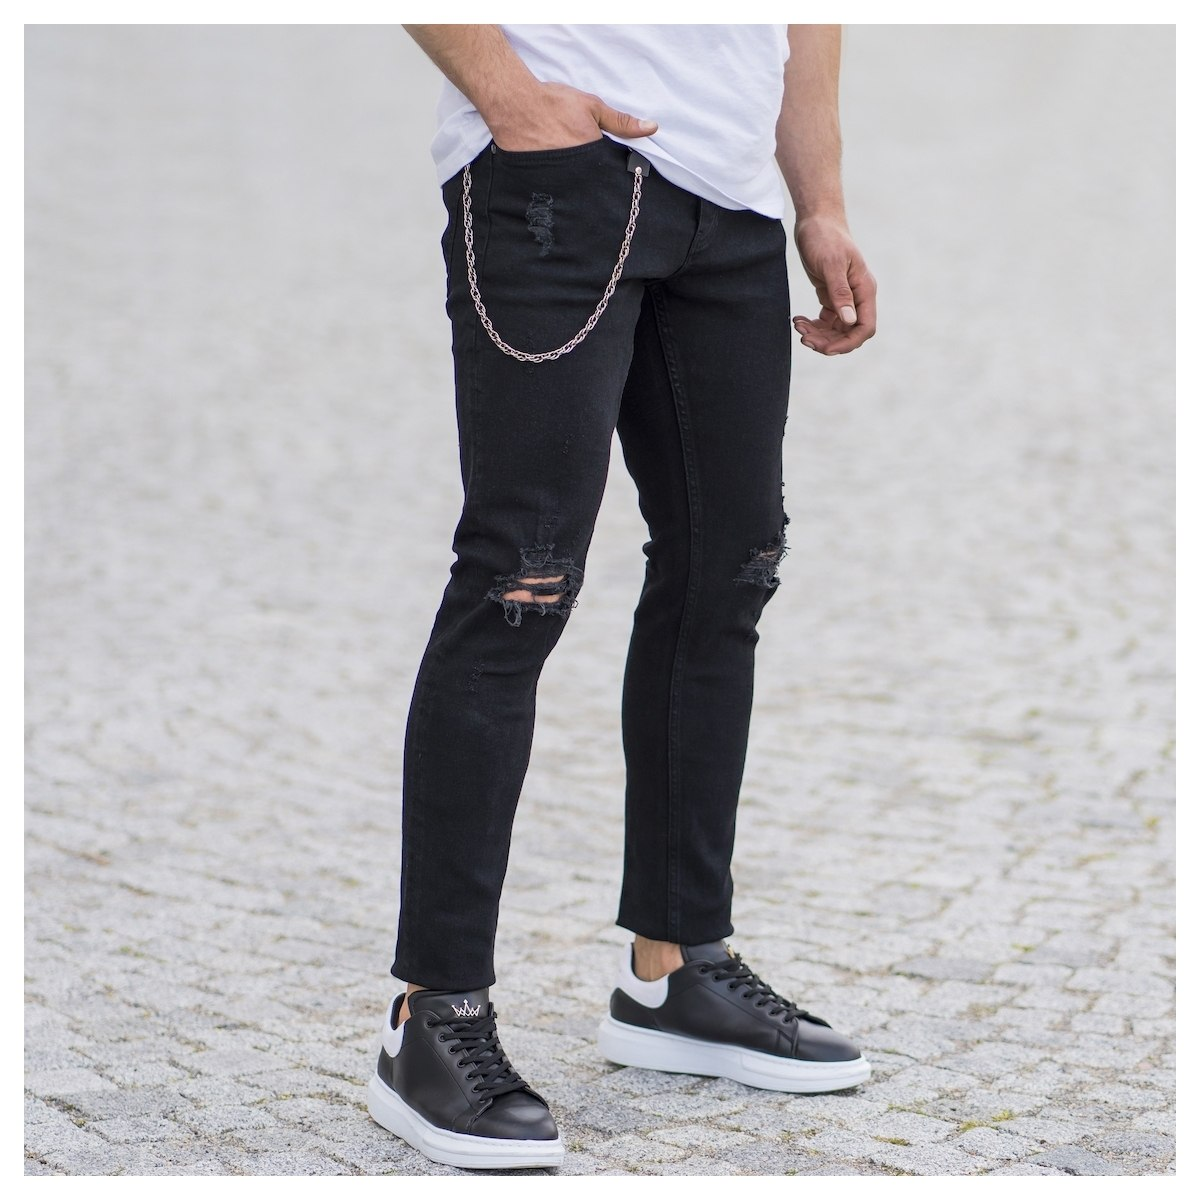 Men's Regged Jeans With Chain In Black